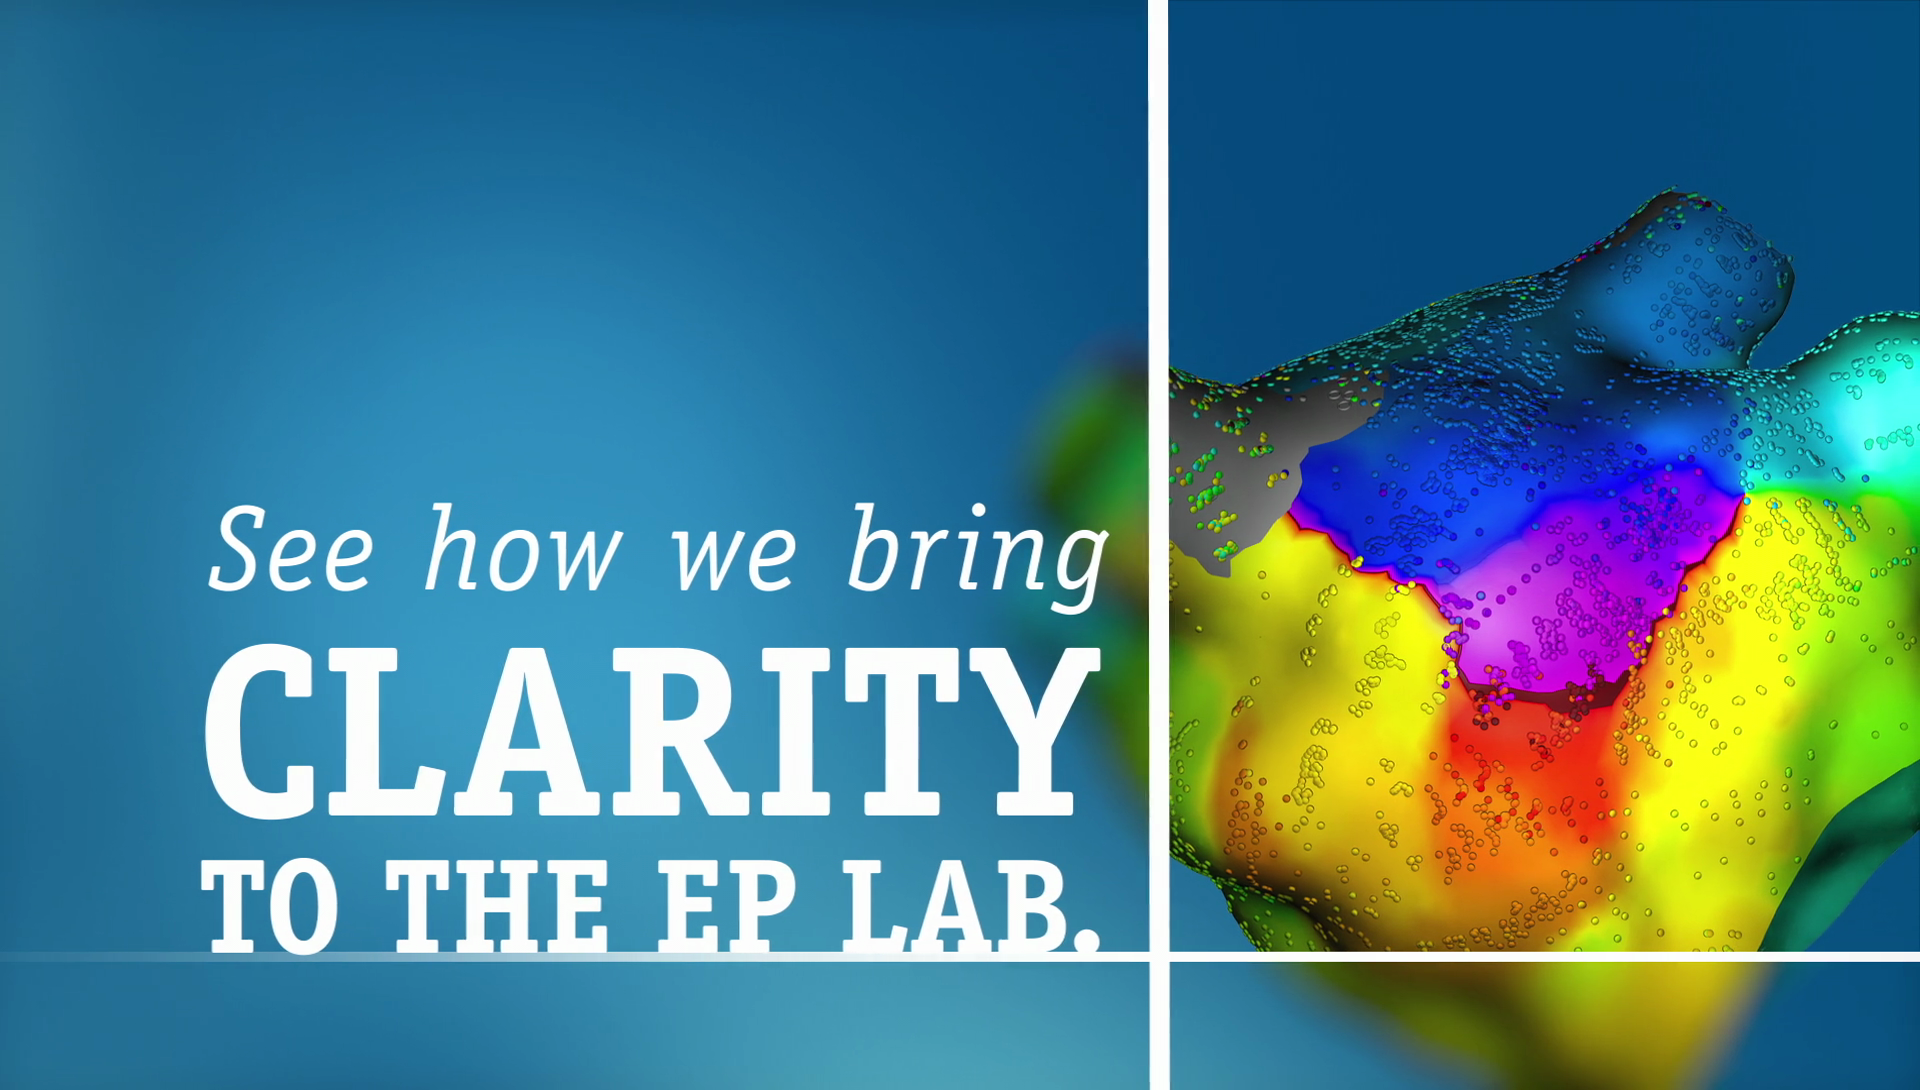 See how we bring CLARITY to the EP lab.